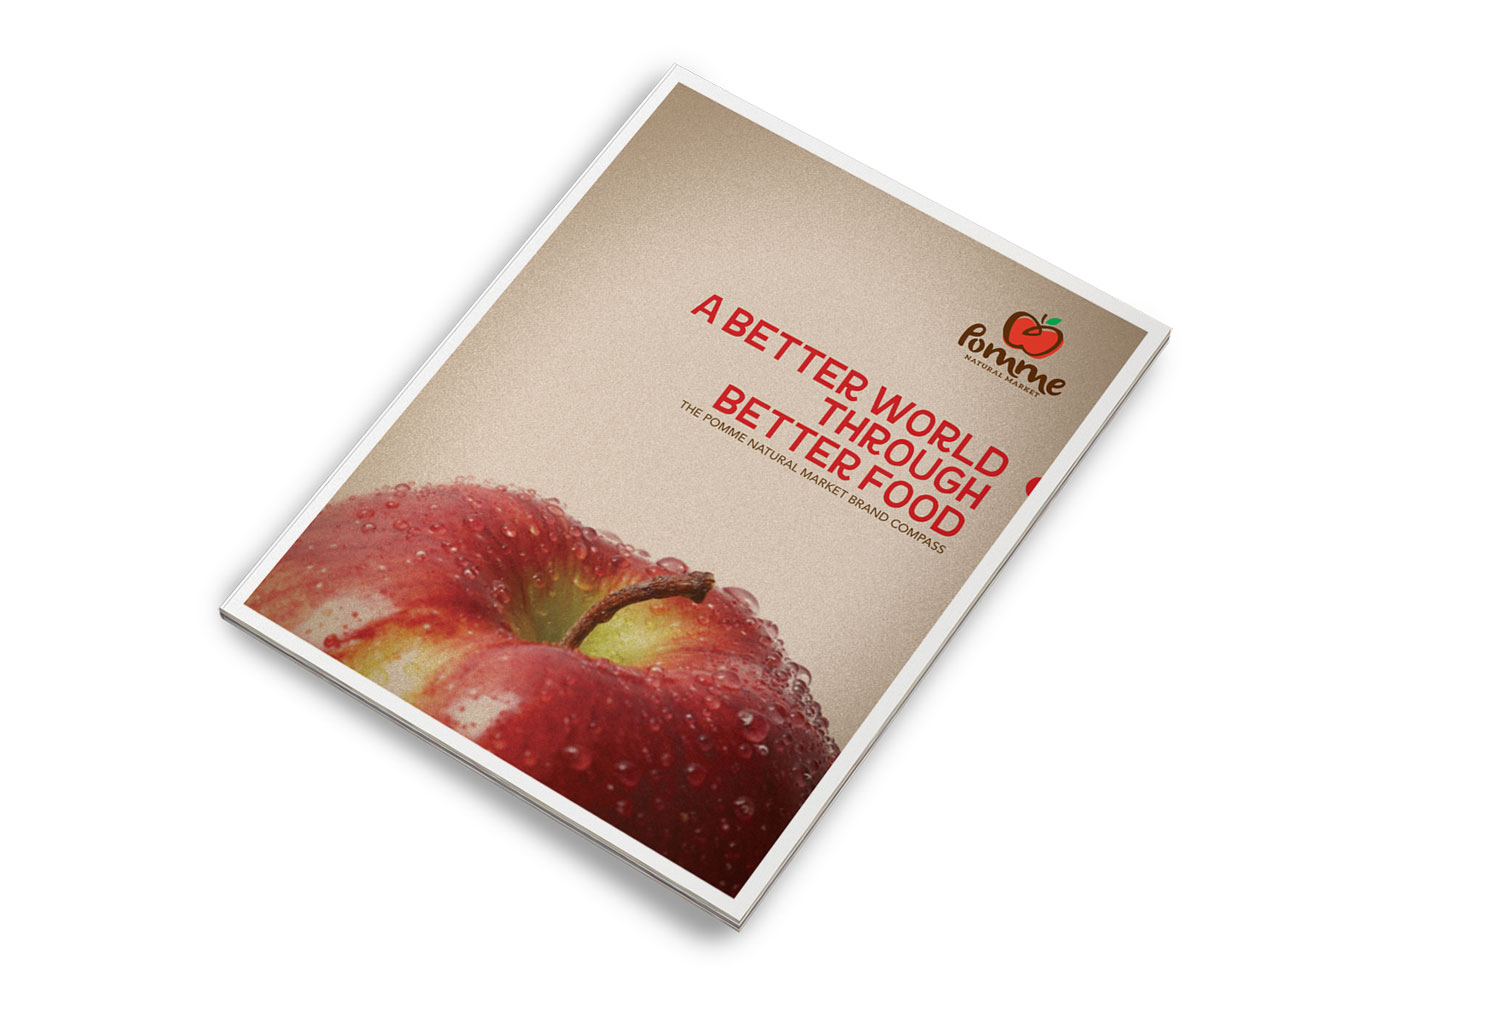 Pomme_Book_1